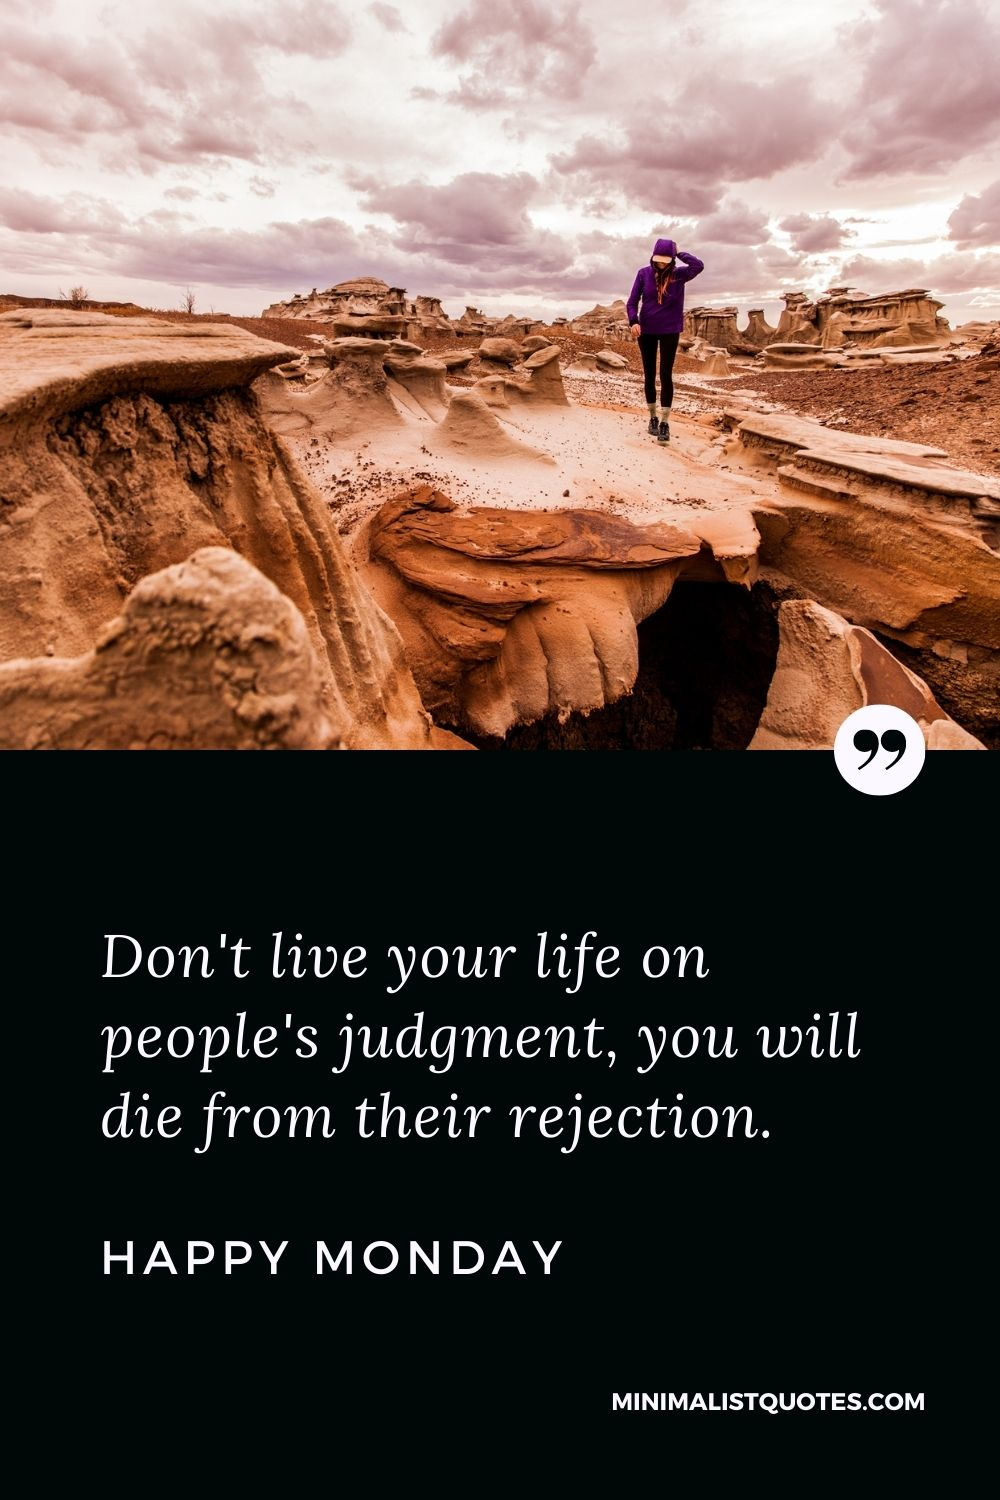 Monday Motivation Quote, Wish & Message: Don't live your life on people's judgment, you will die from their rejection. Happy Monday!